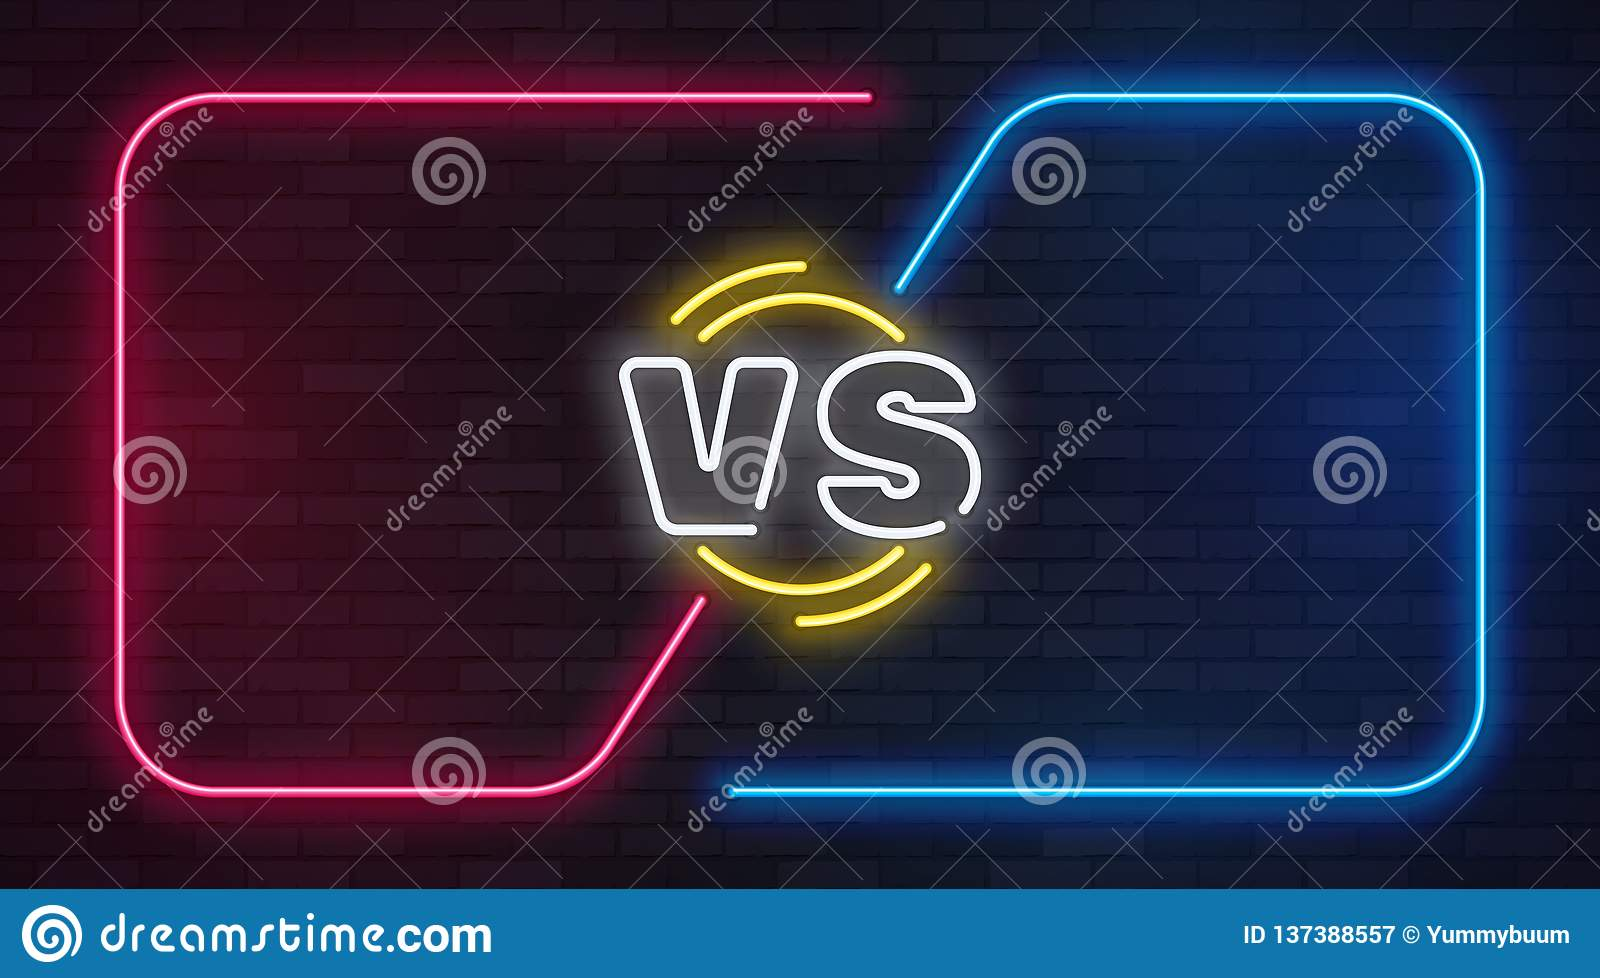 Vs neon. Versus battle game banner with neon empty frames. Boxing match duel, competition business confrontation